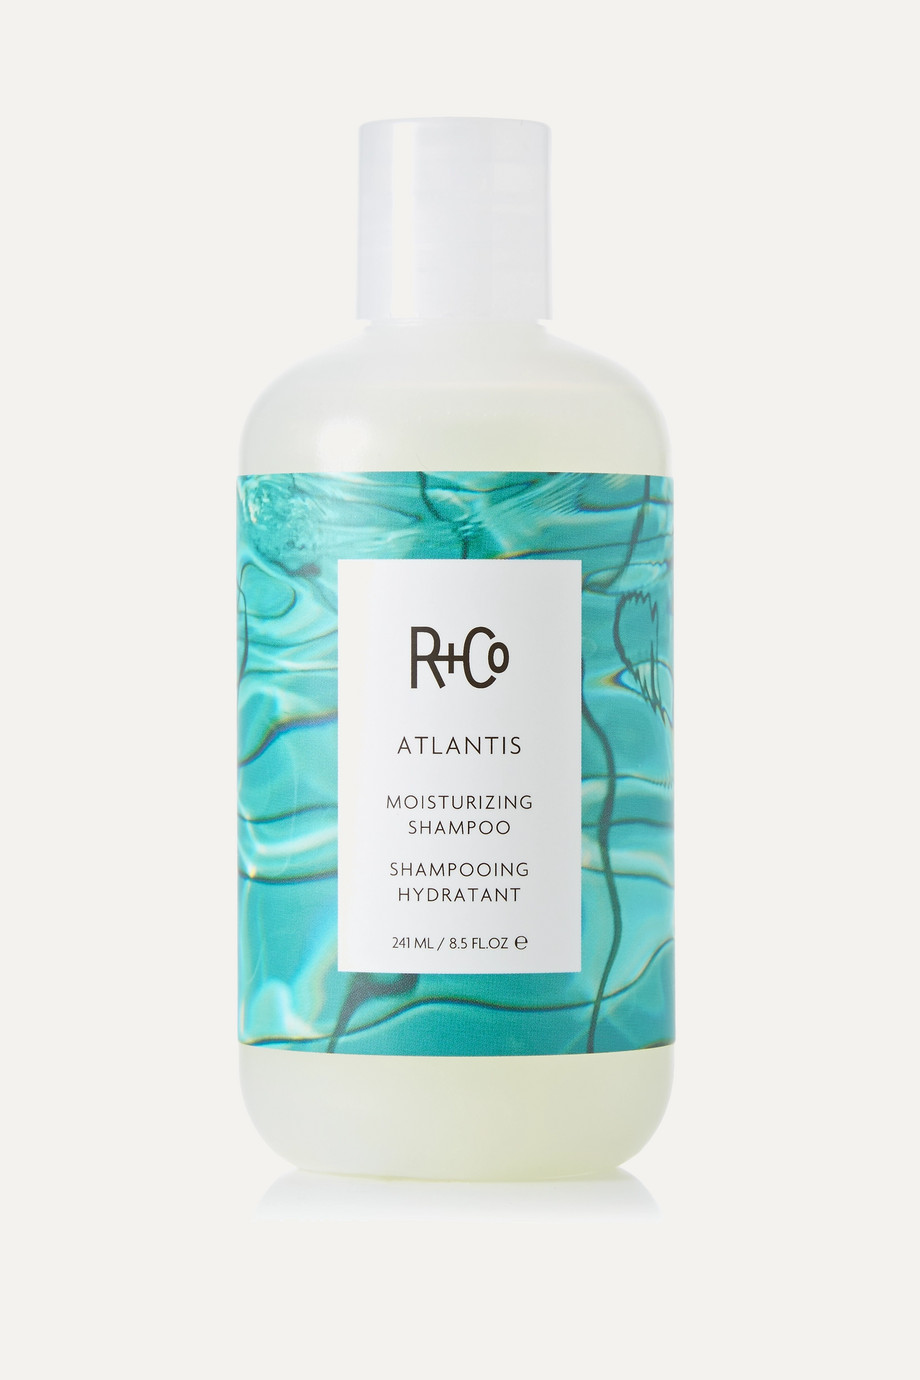 R+CO Atlantis Moisturizing Shampoo, 241ml